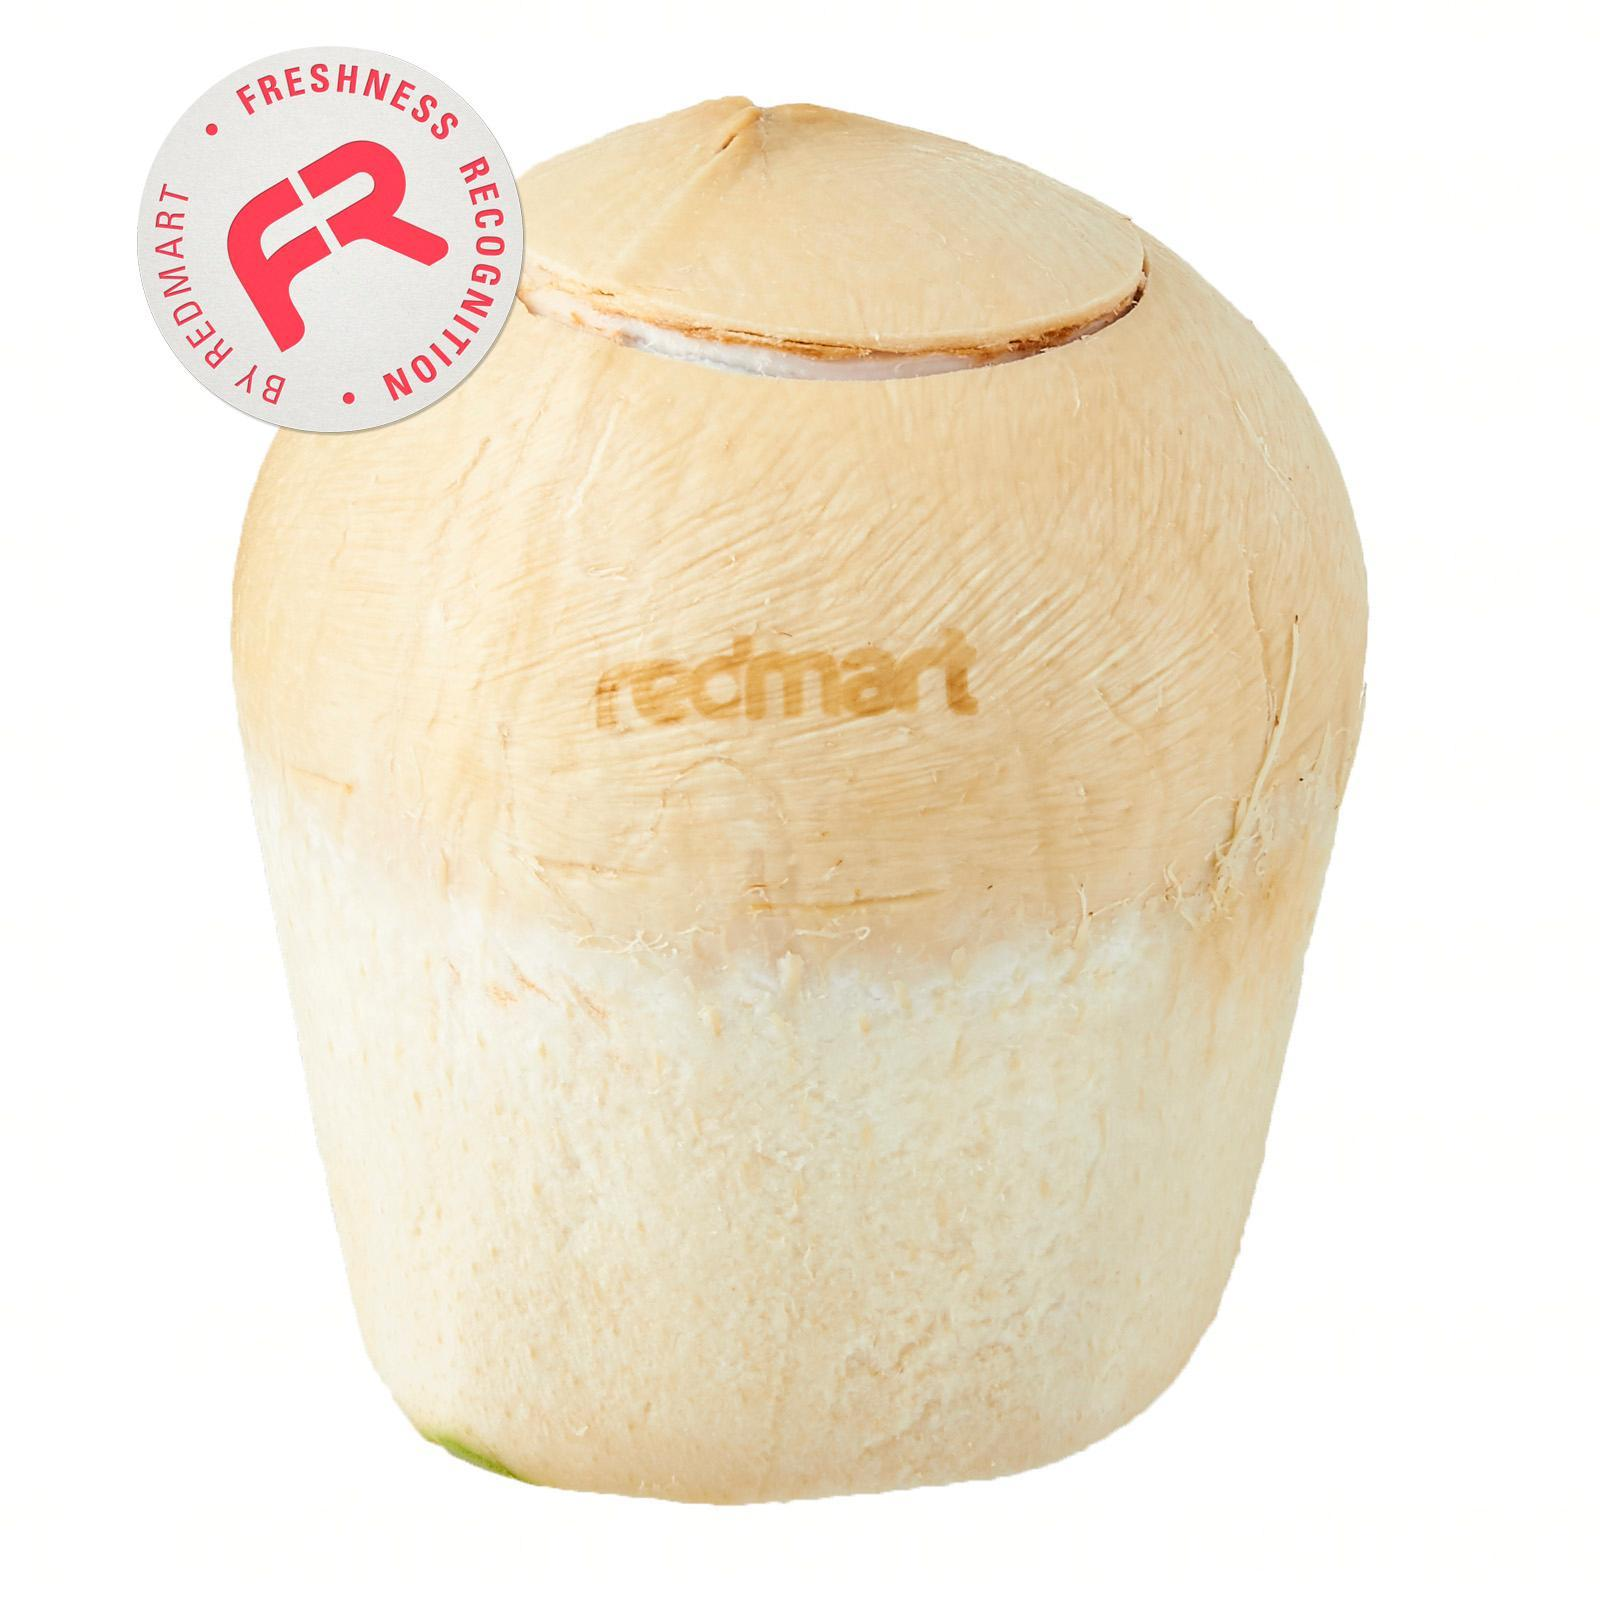 Redmart Thai Pre-Cut Coconut By Redmart.